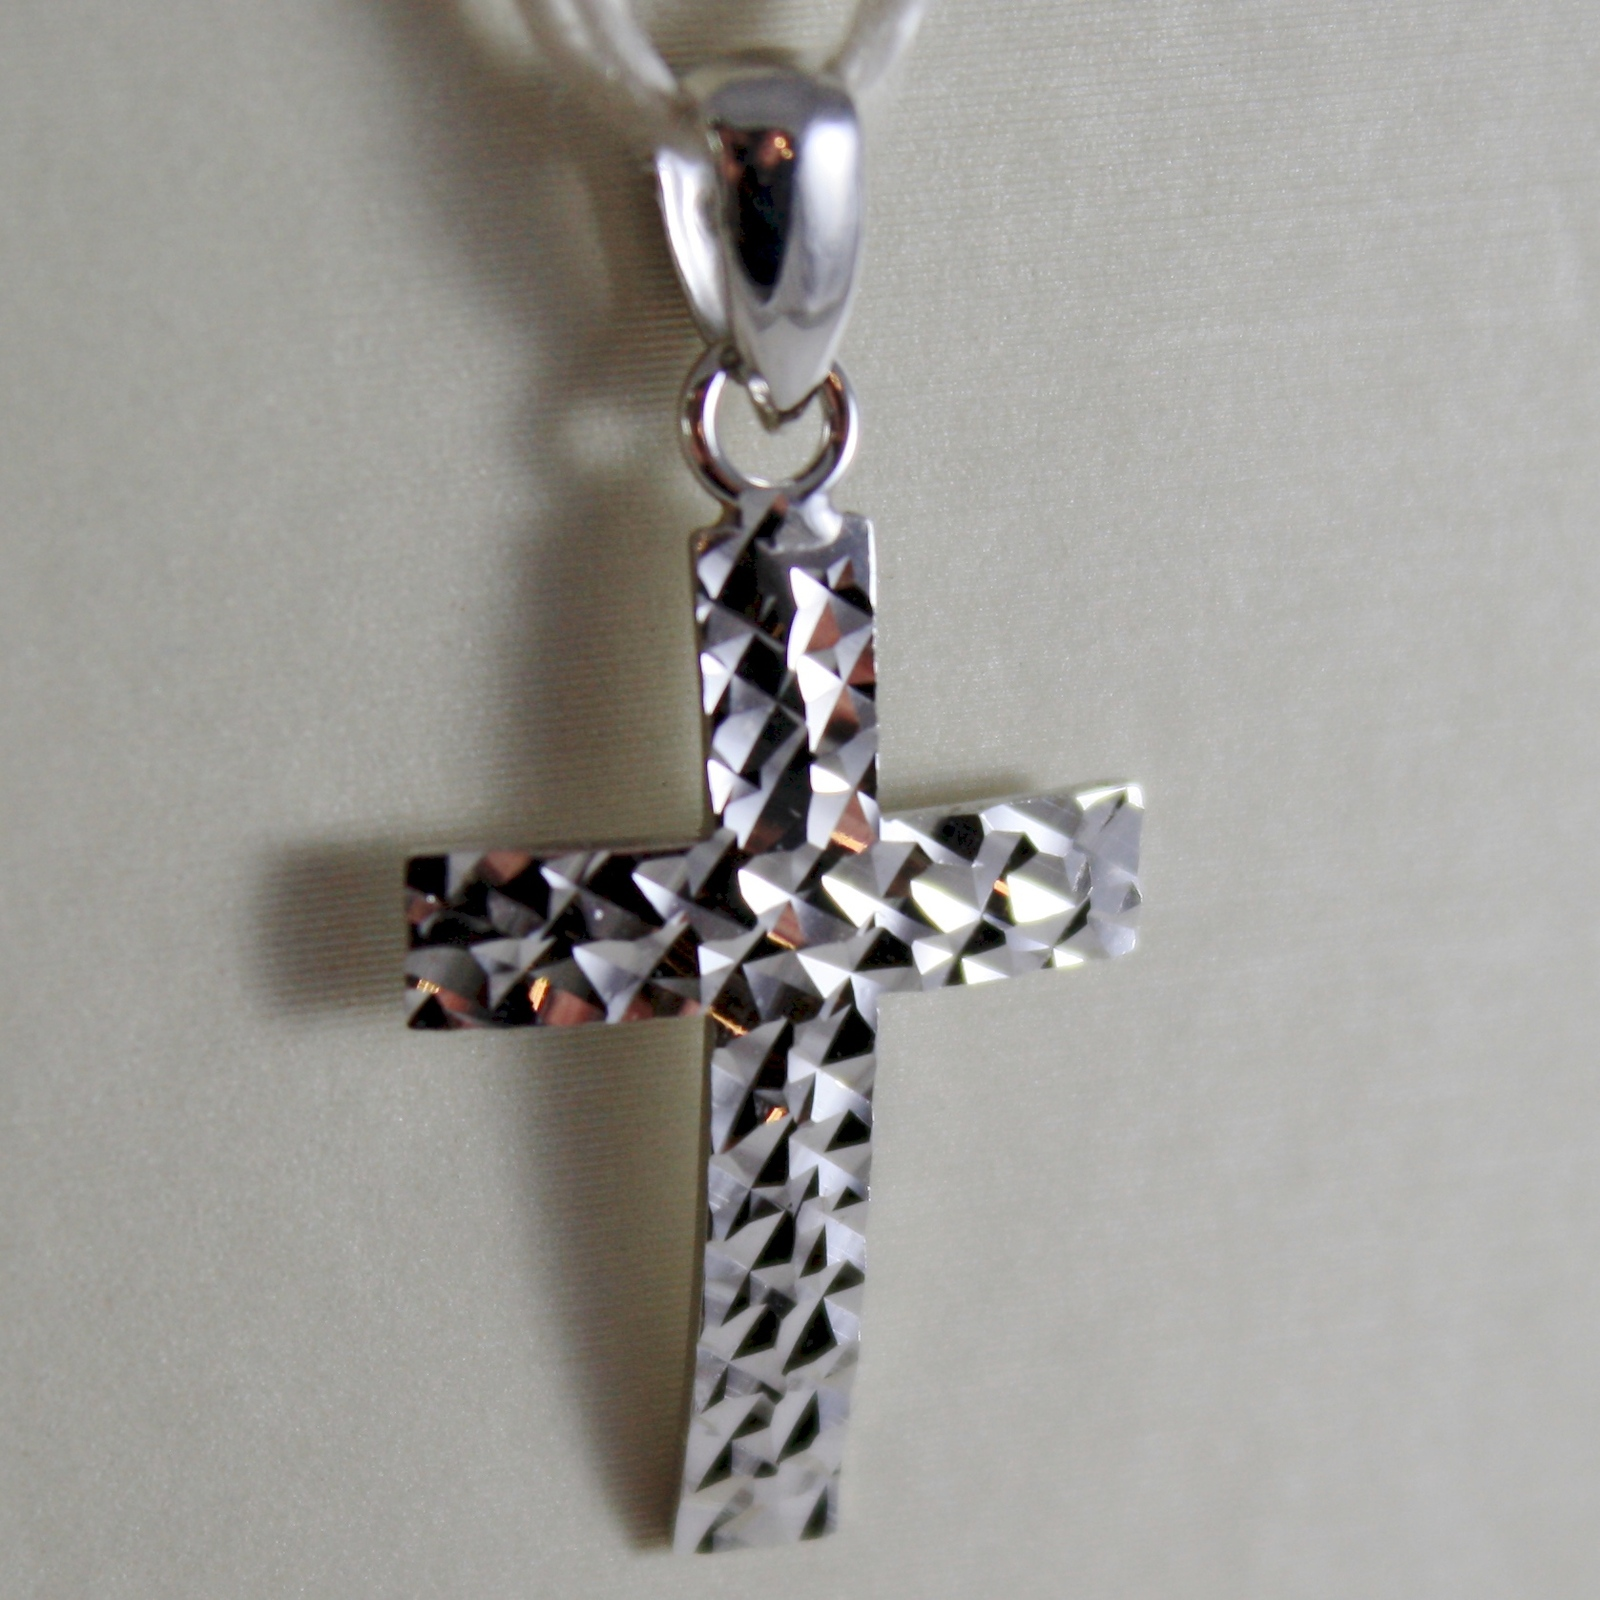 SOLID 18K WHITE GOLD CROSS, PENDANT, STYLIZED, HAMMERED, ARCHED, MADE IN ITALY